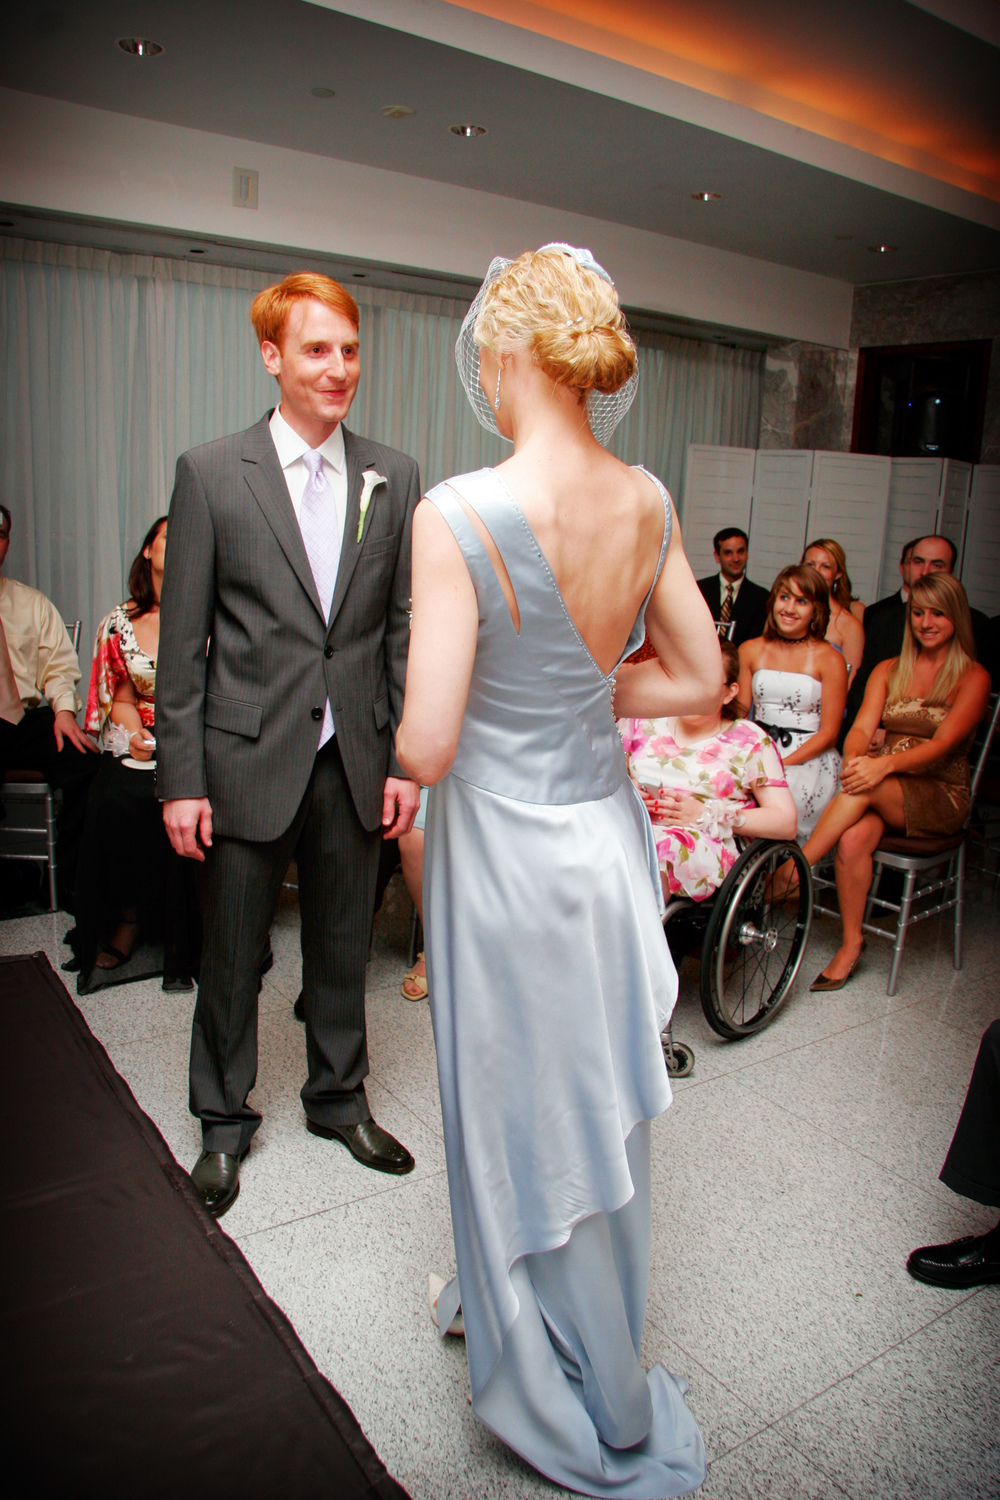 SoHo_New_York_City_Wedding_014.JPG